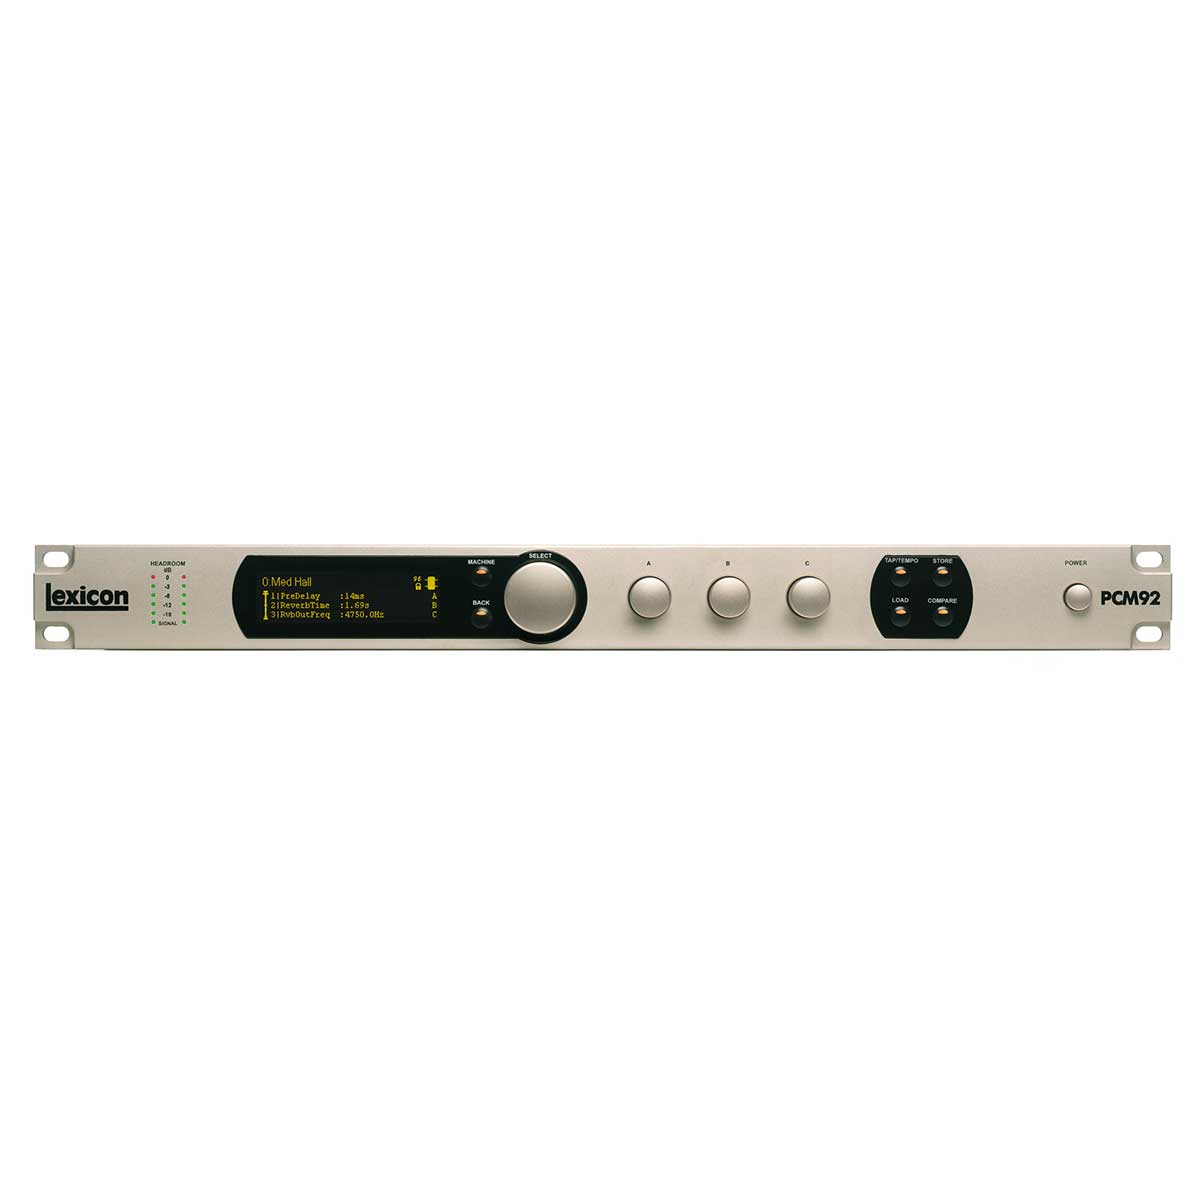 Lexicon PCM92 Reverb and Effects Processor